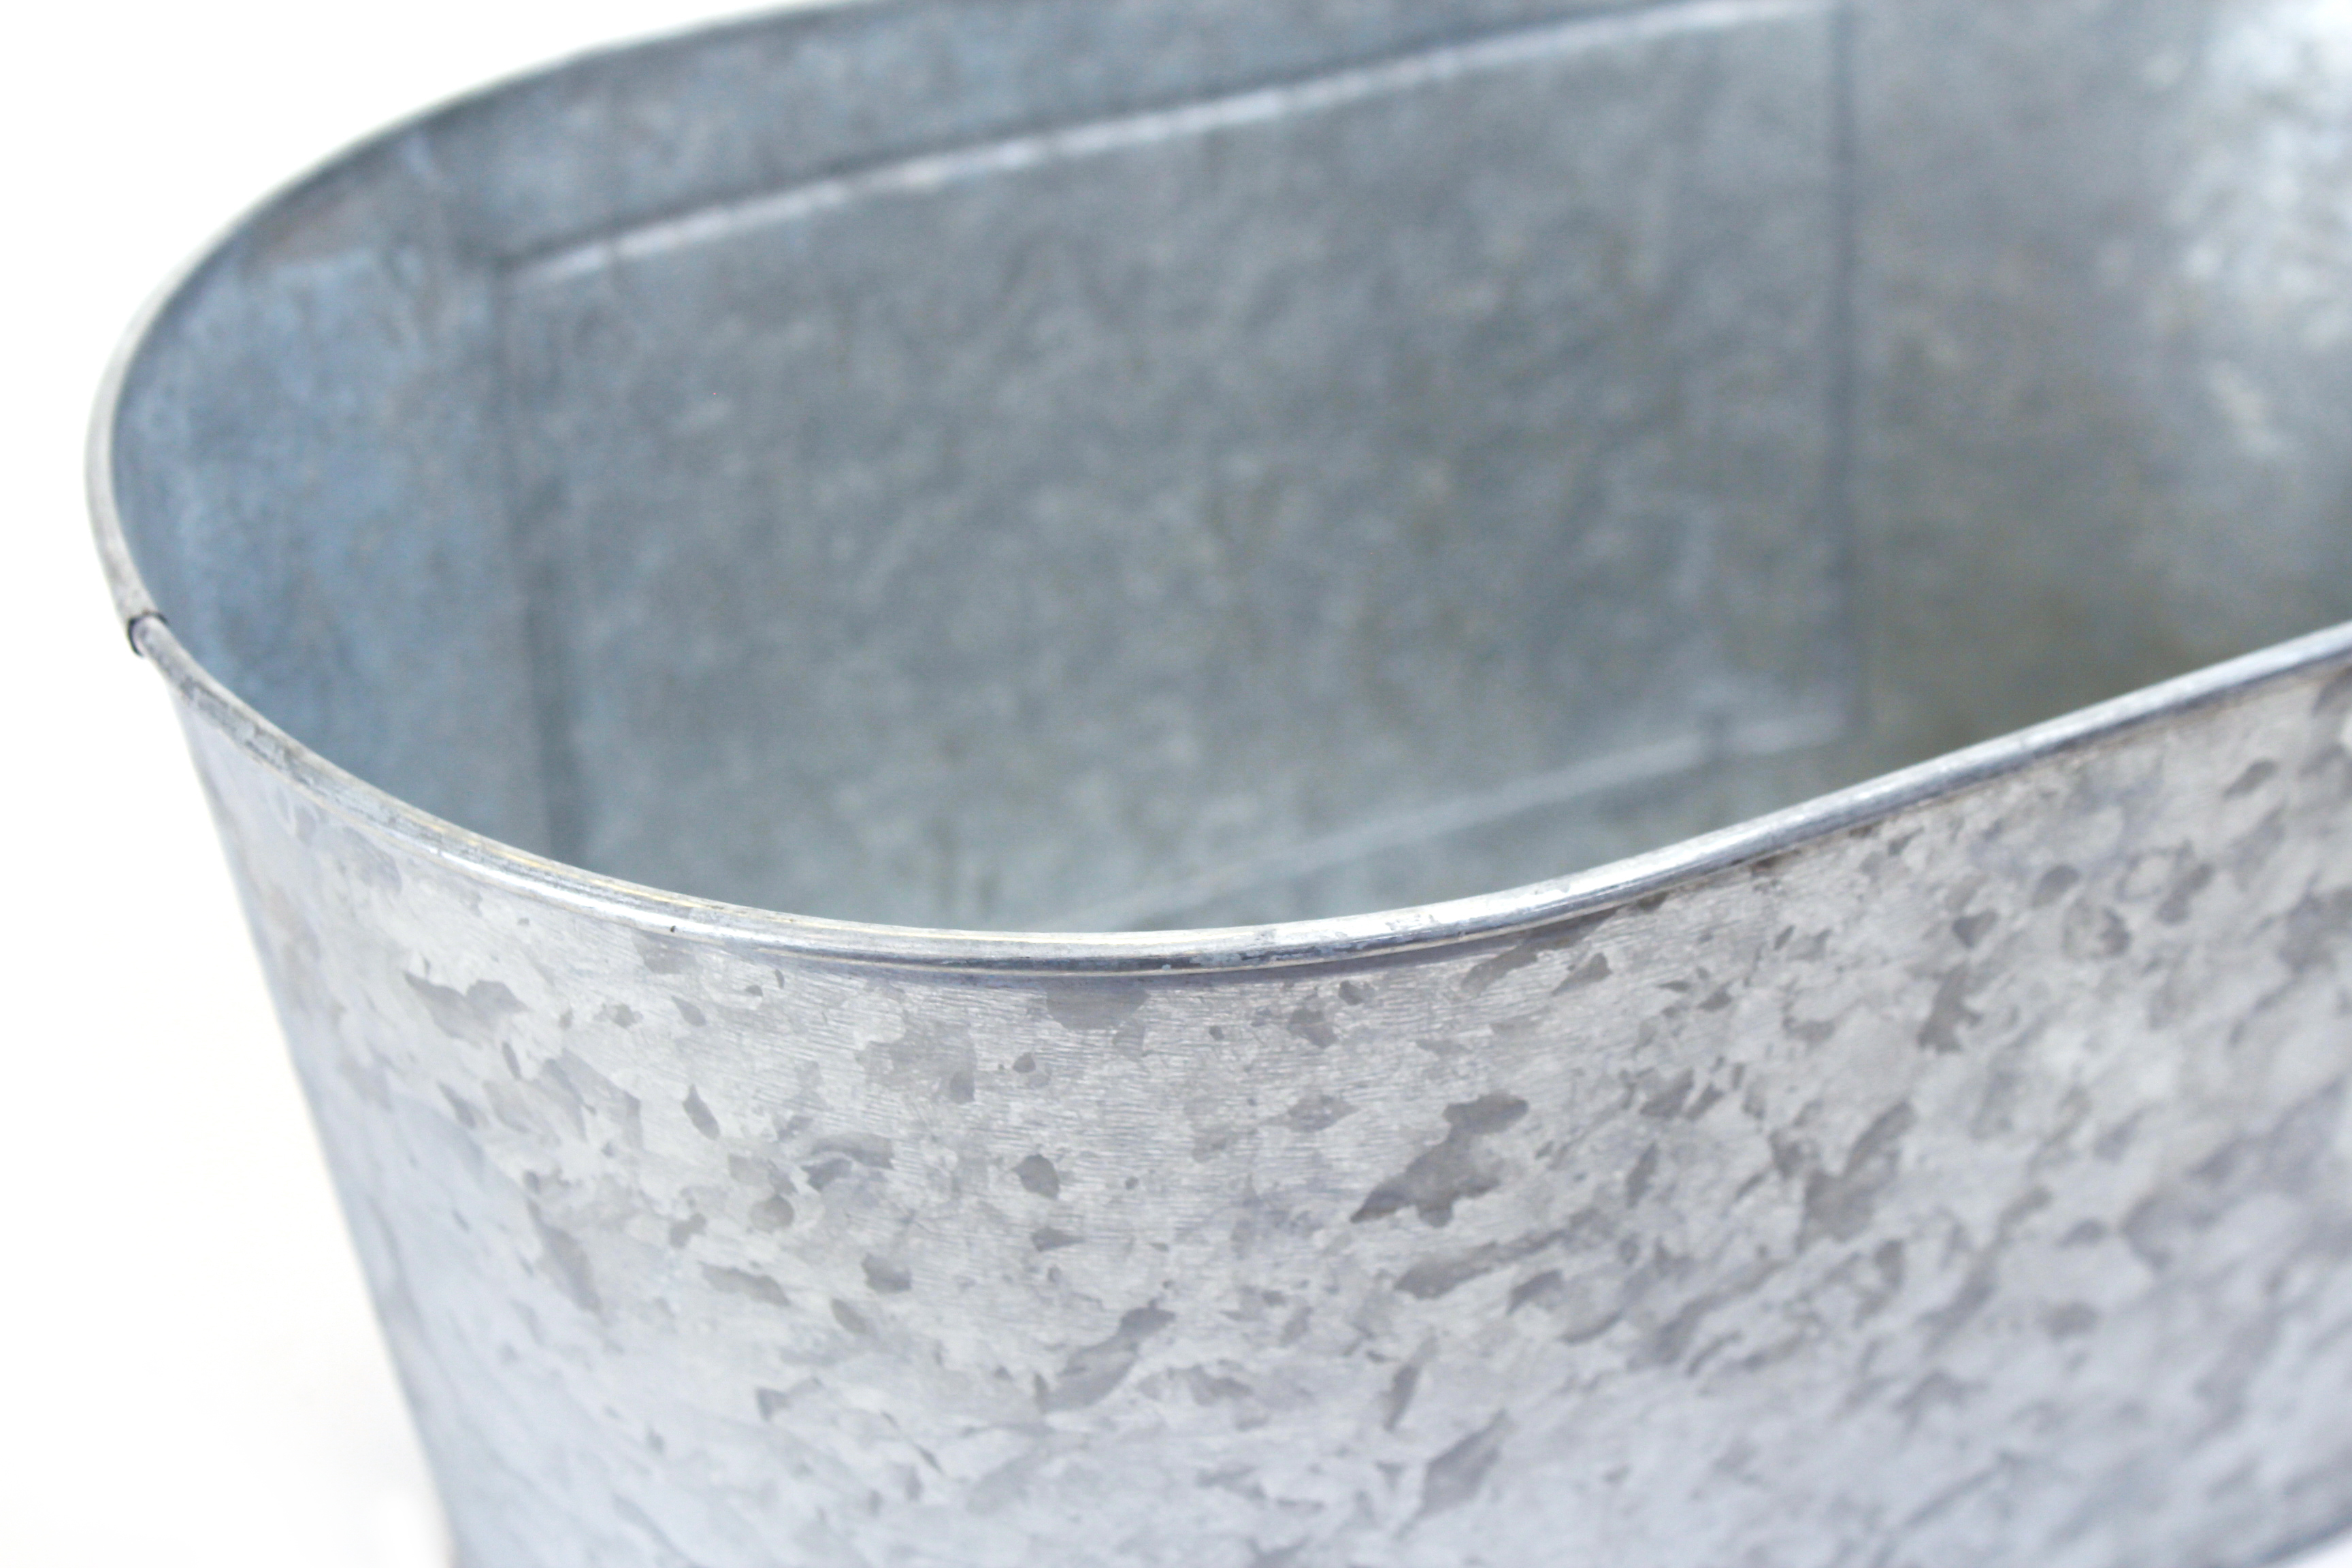 Silver Oval Metal Basket With Chalkboard Panel close